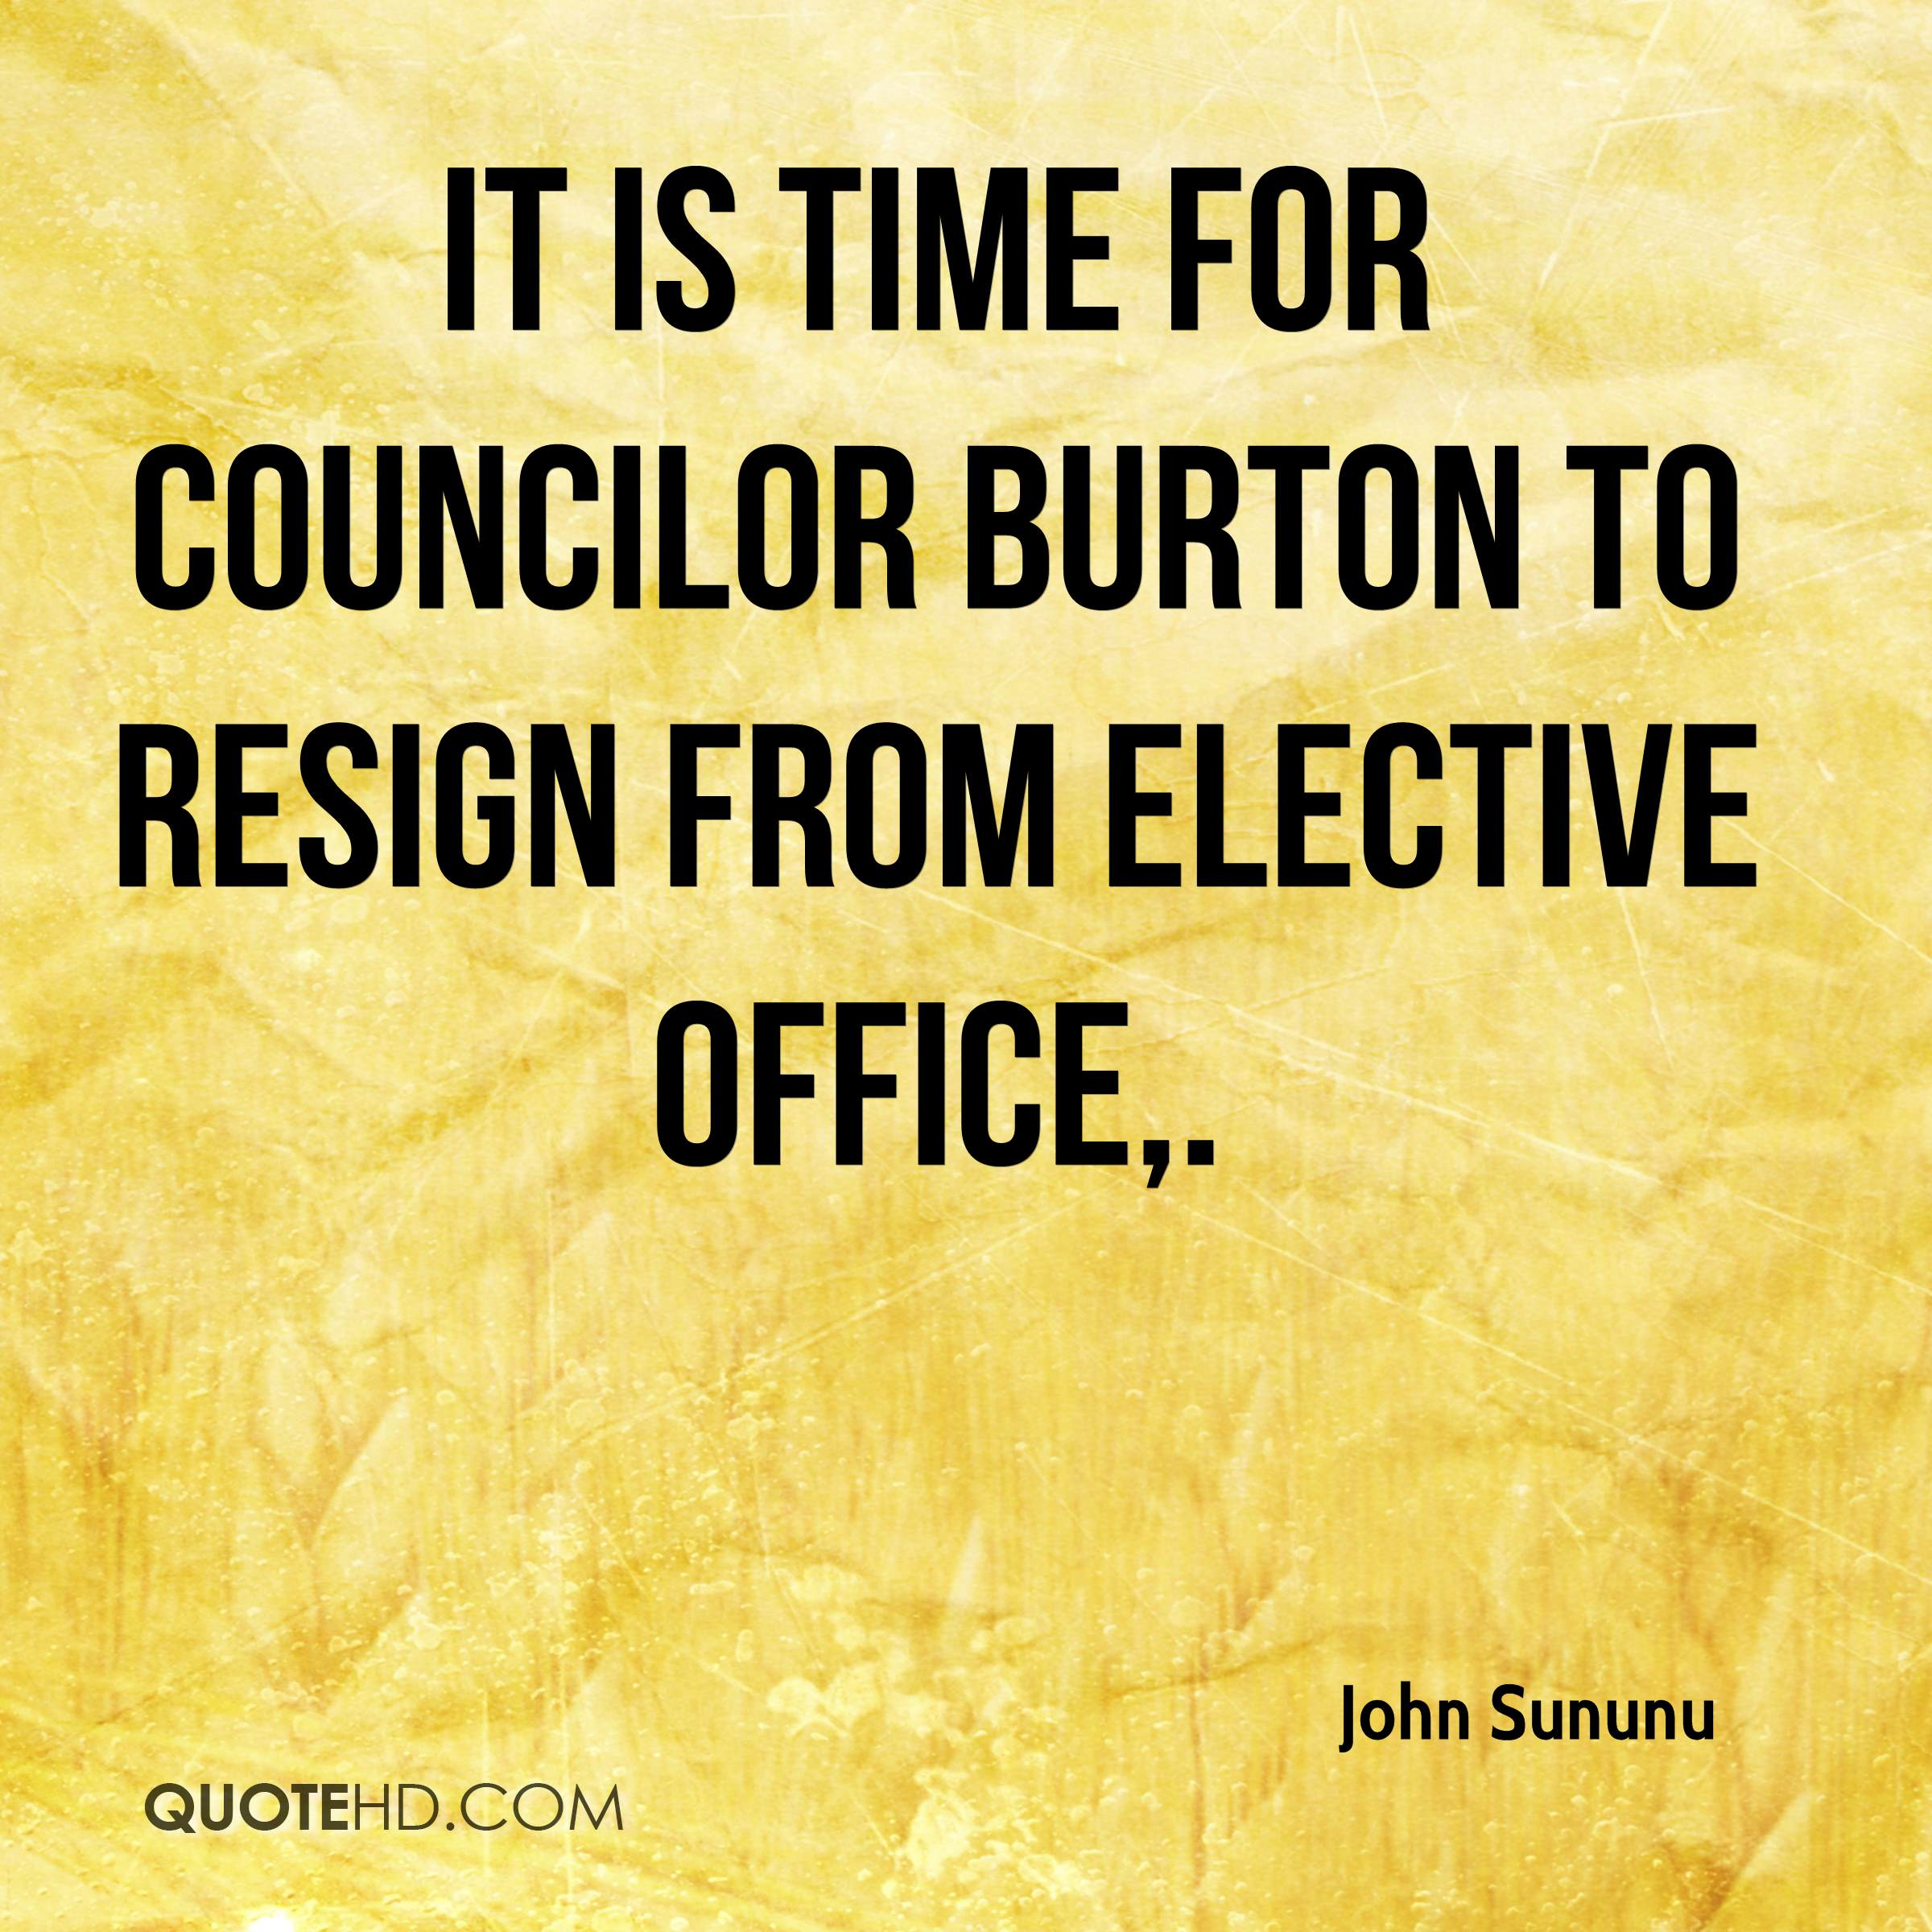 It is time for Councilor Burton to resign from elective office.